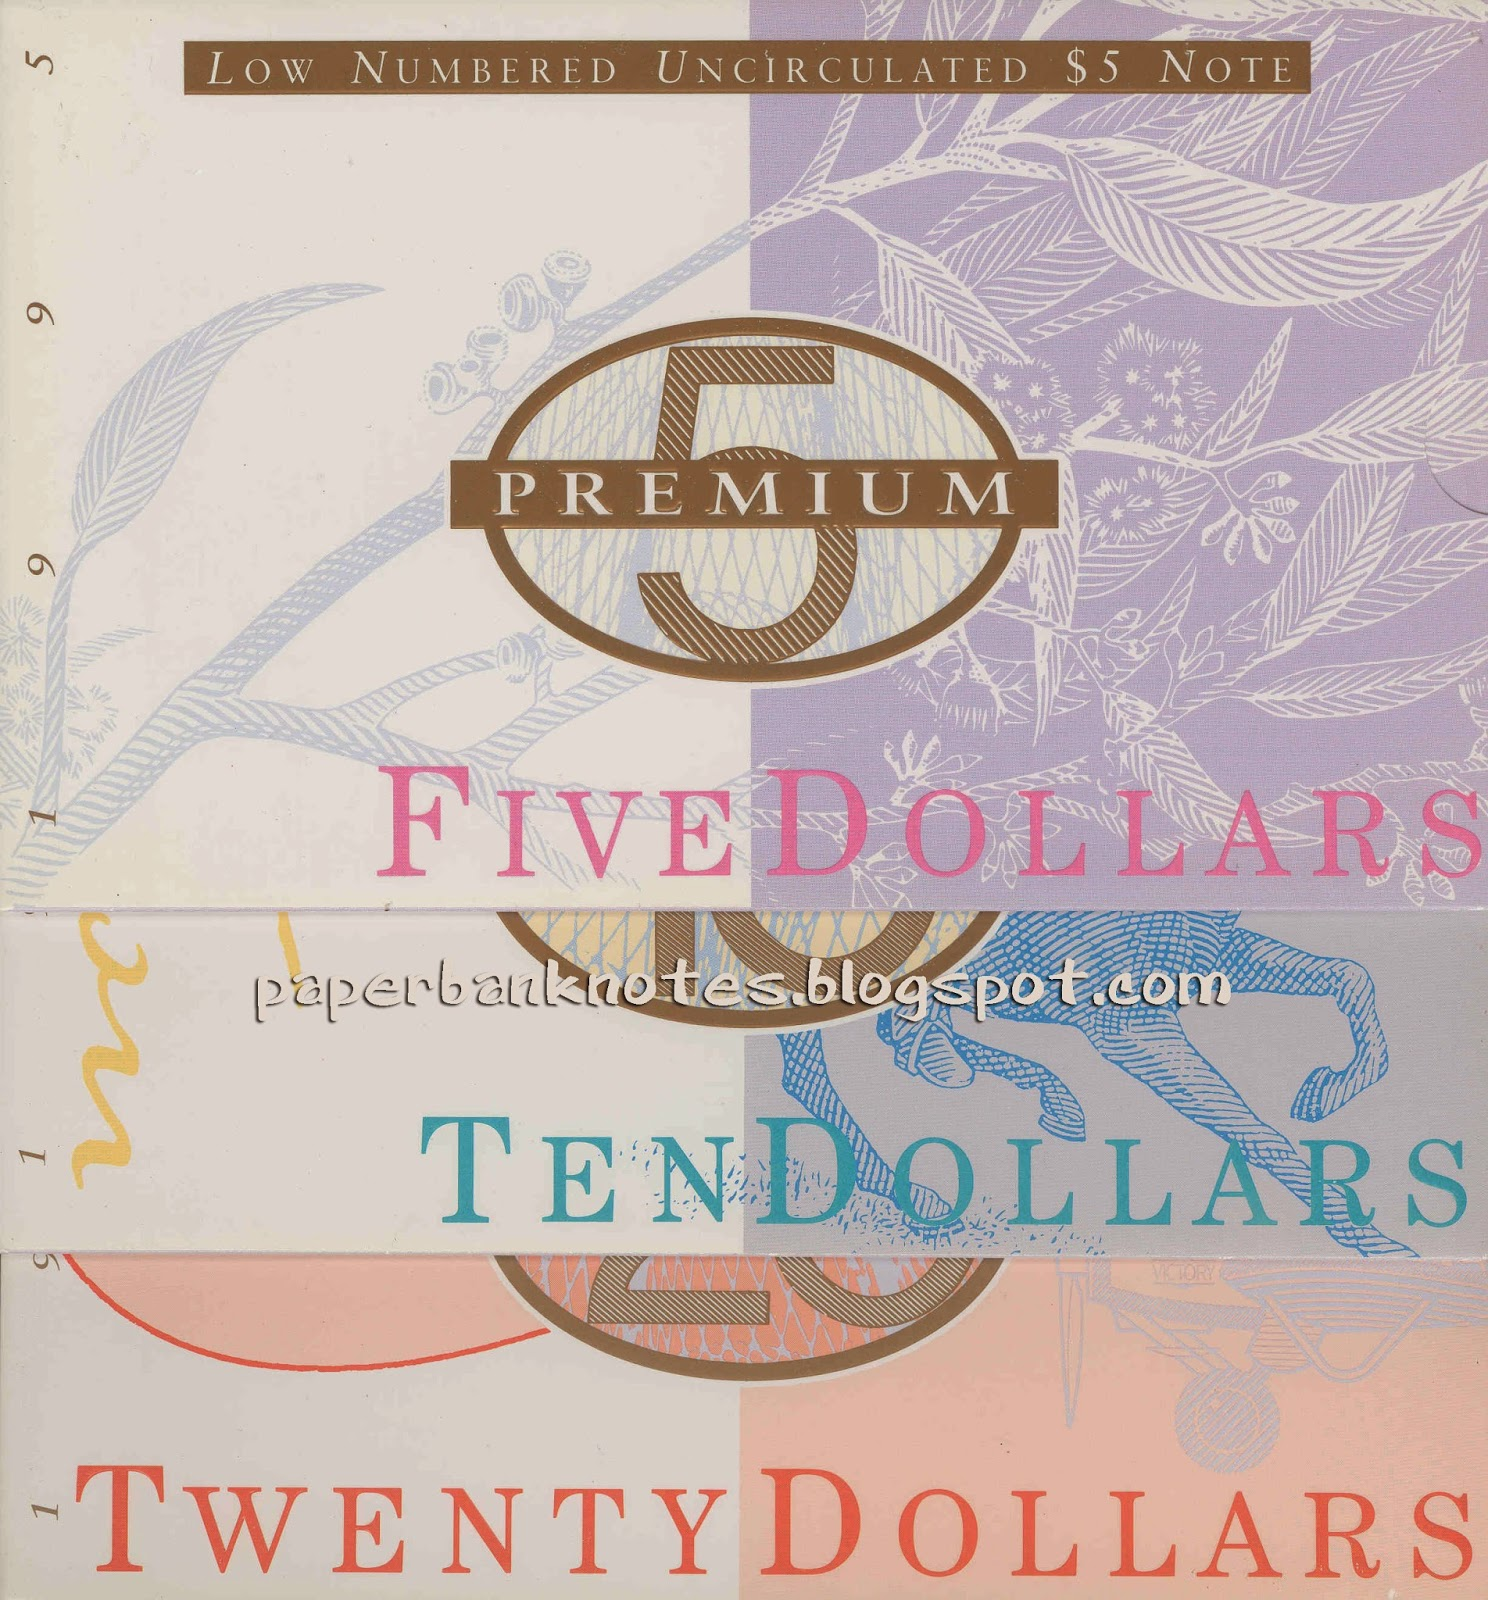 http://australiapolymernotes.blogspot.com/2014/05/1995-annual-premium-red-serial-numbers.html